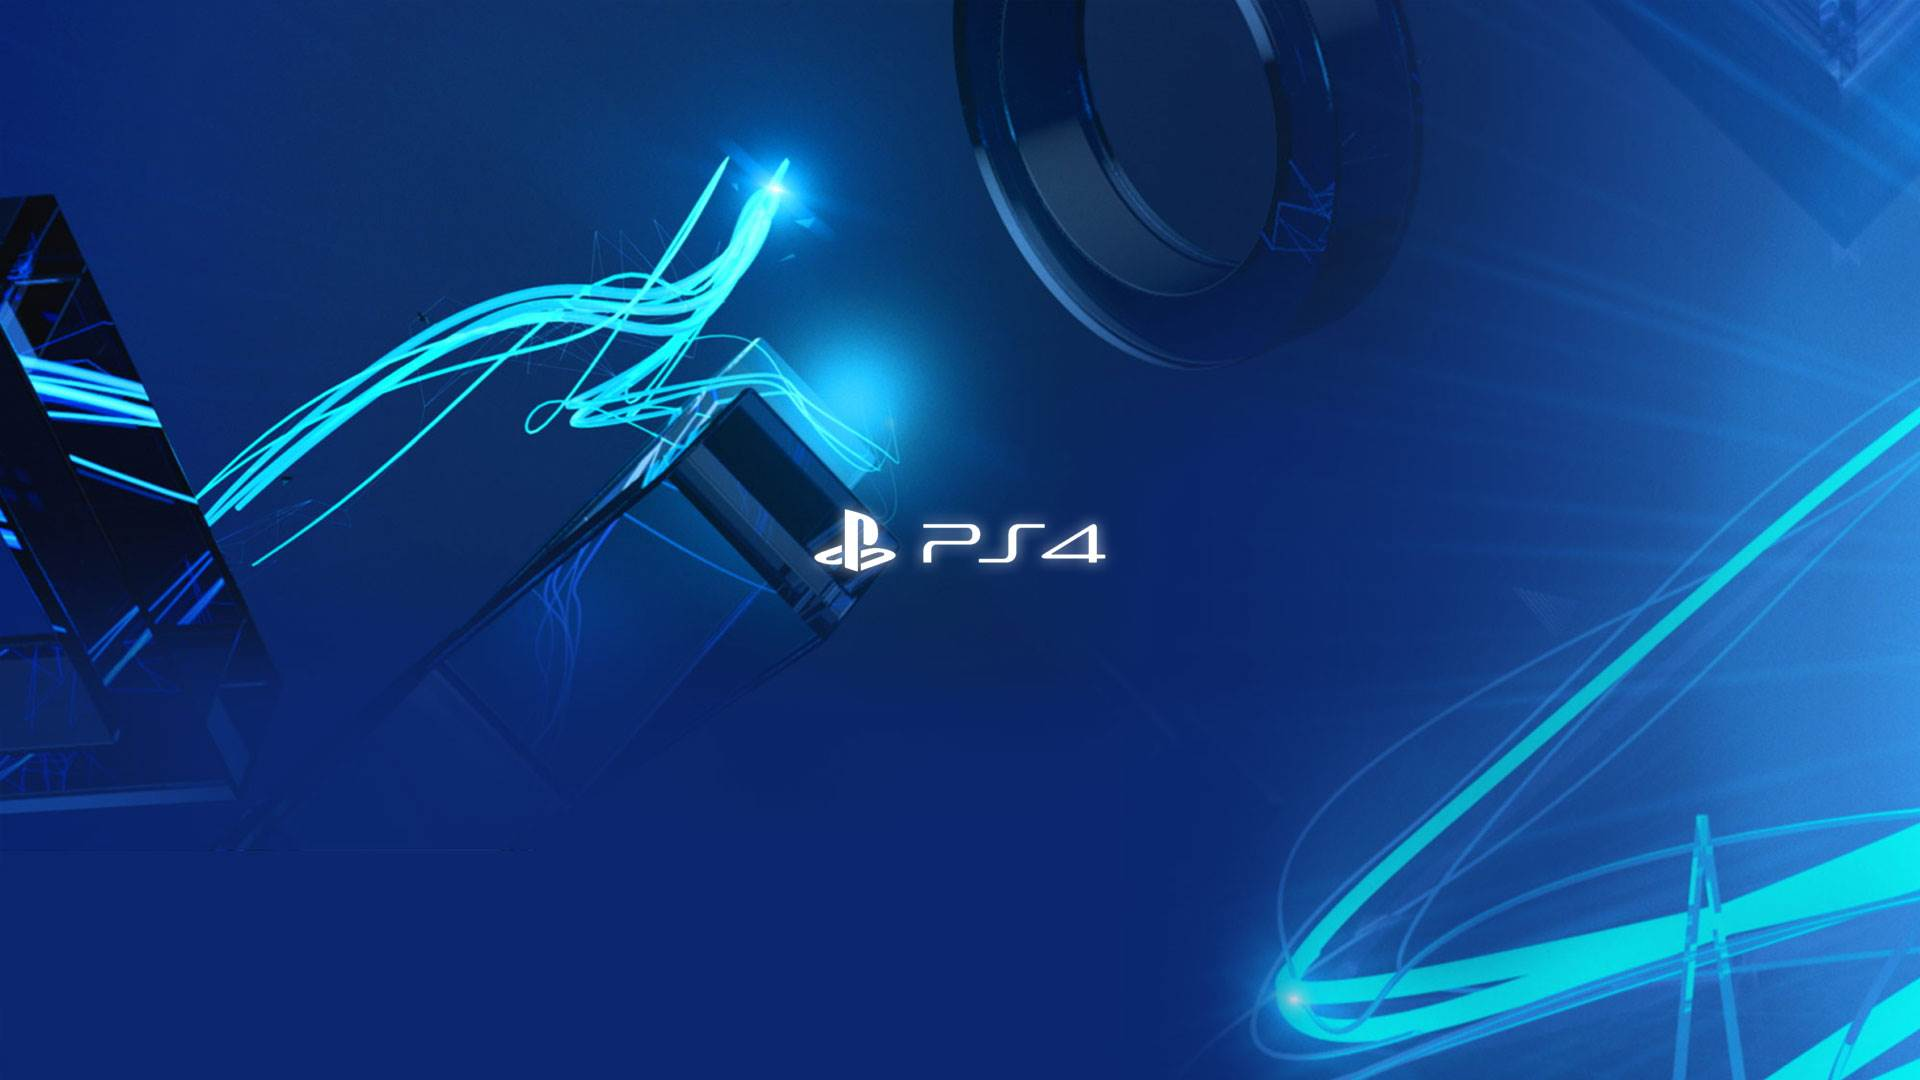 PS4 Wallpapers in 1080P HD GamingBoltcom Video Game News Reviews 1920x1080